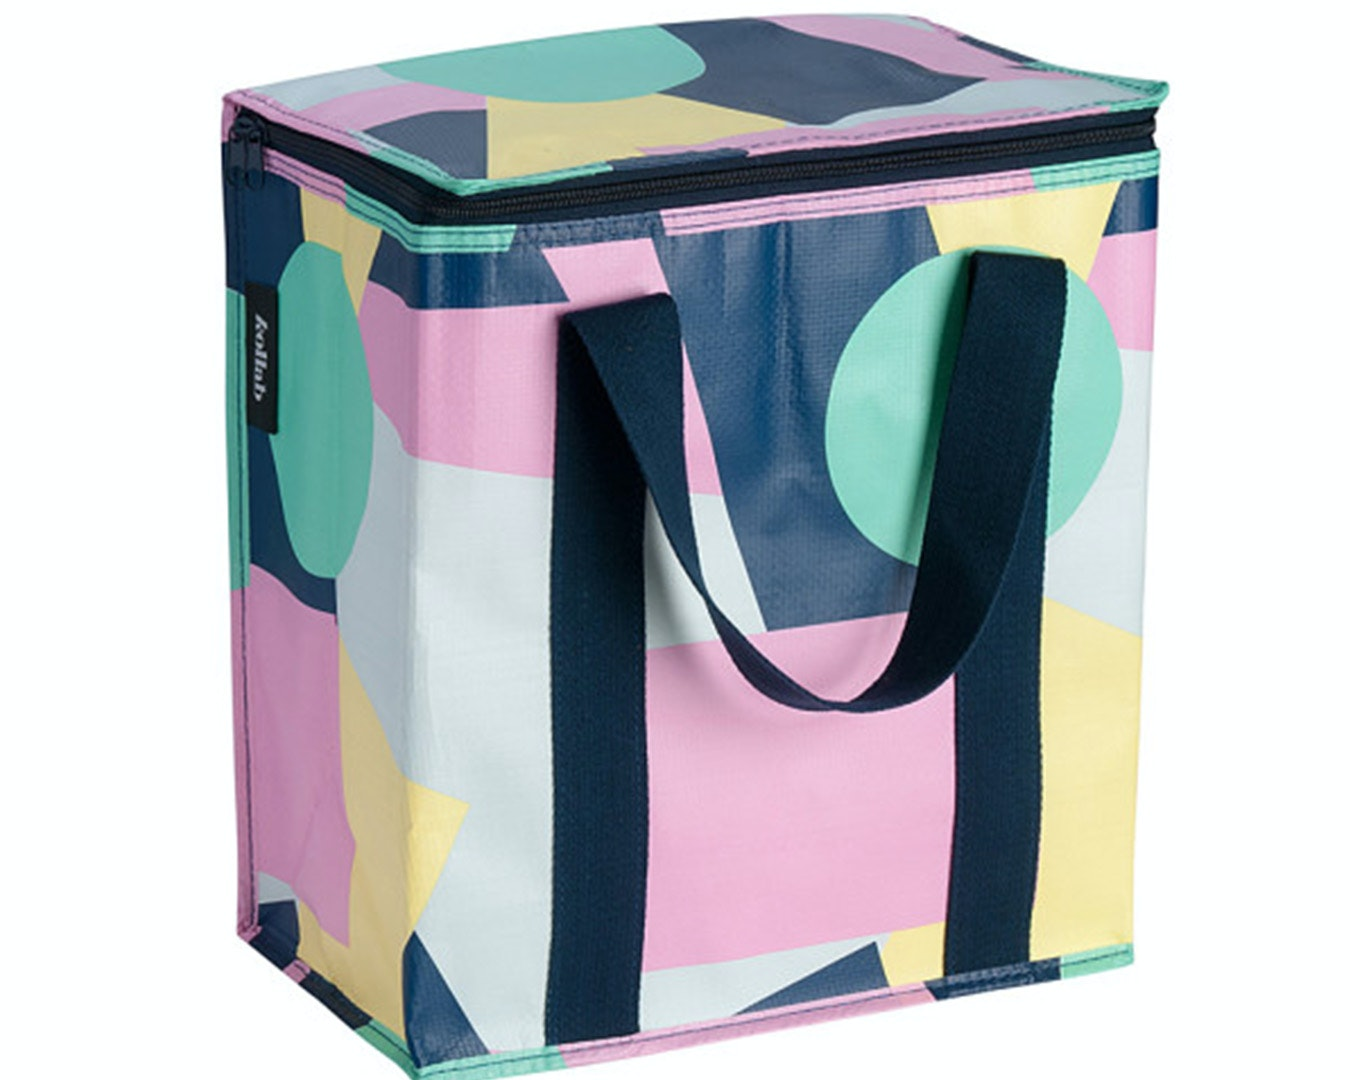 a multi-coloured cooler bag with navy cotton handles.